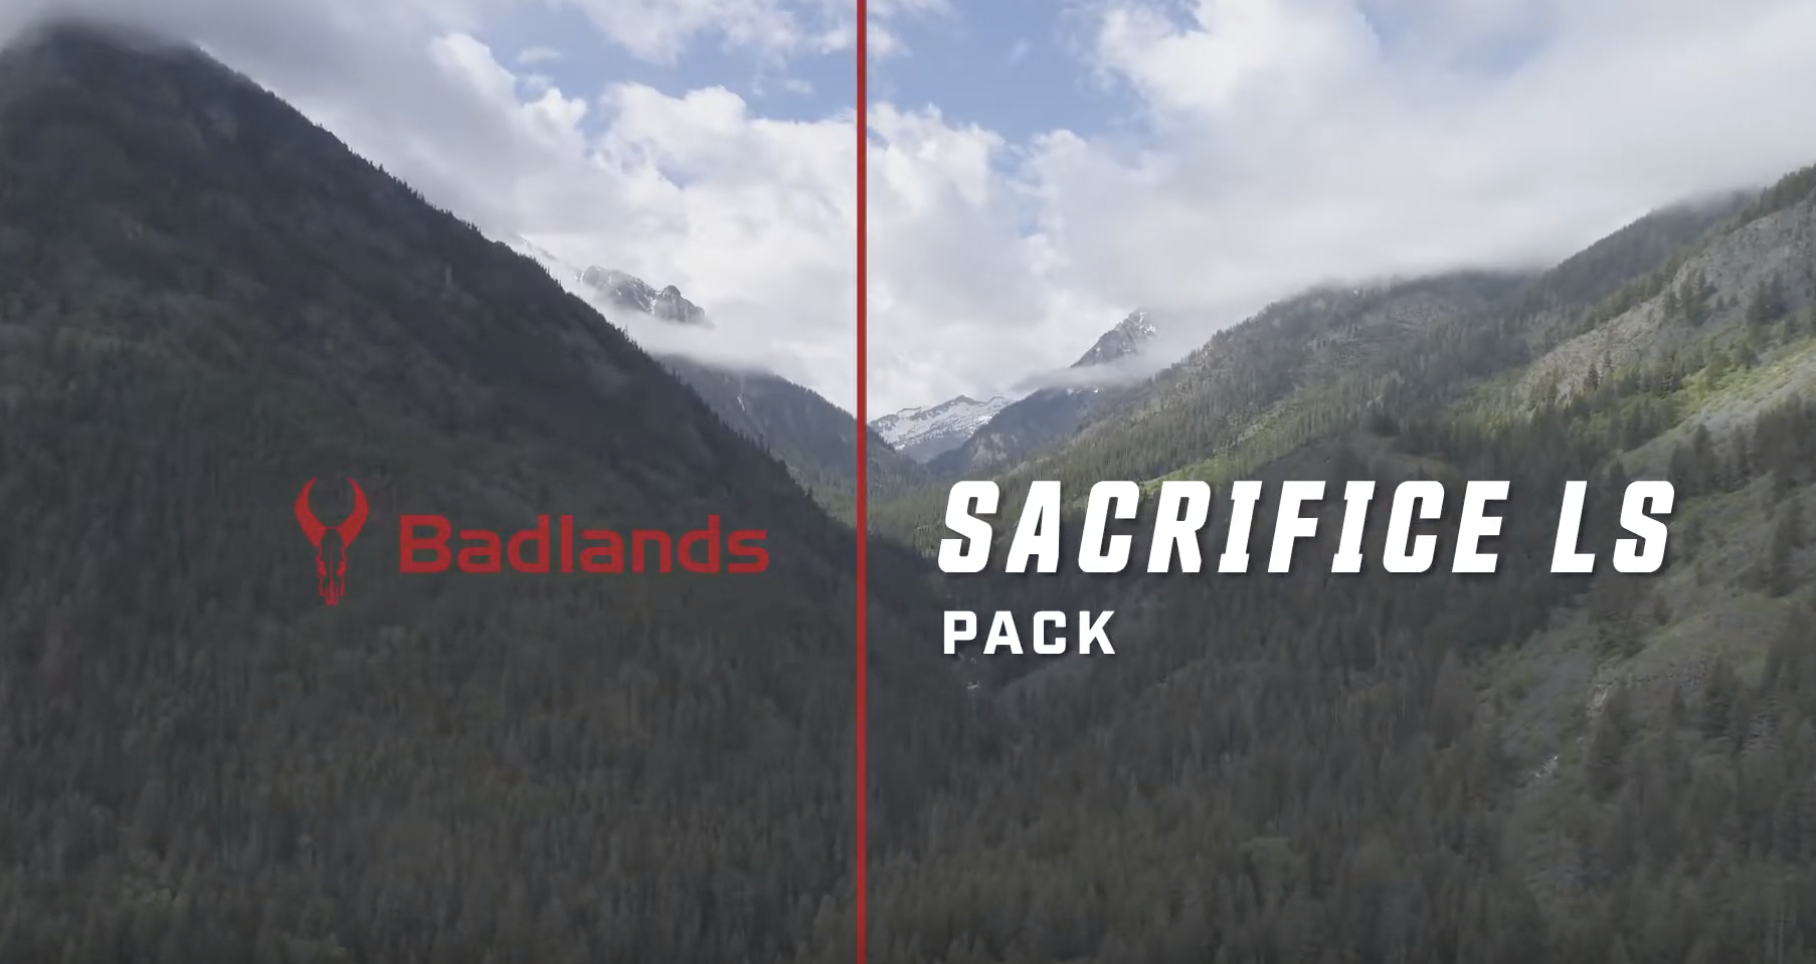 Learn more about the Sacrifice LS Pack